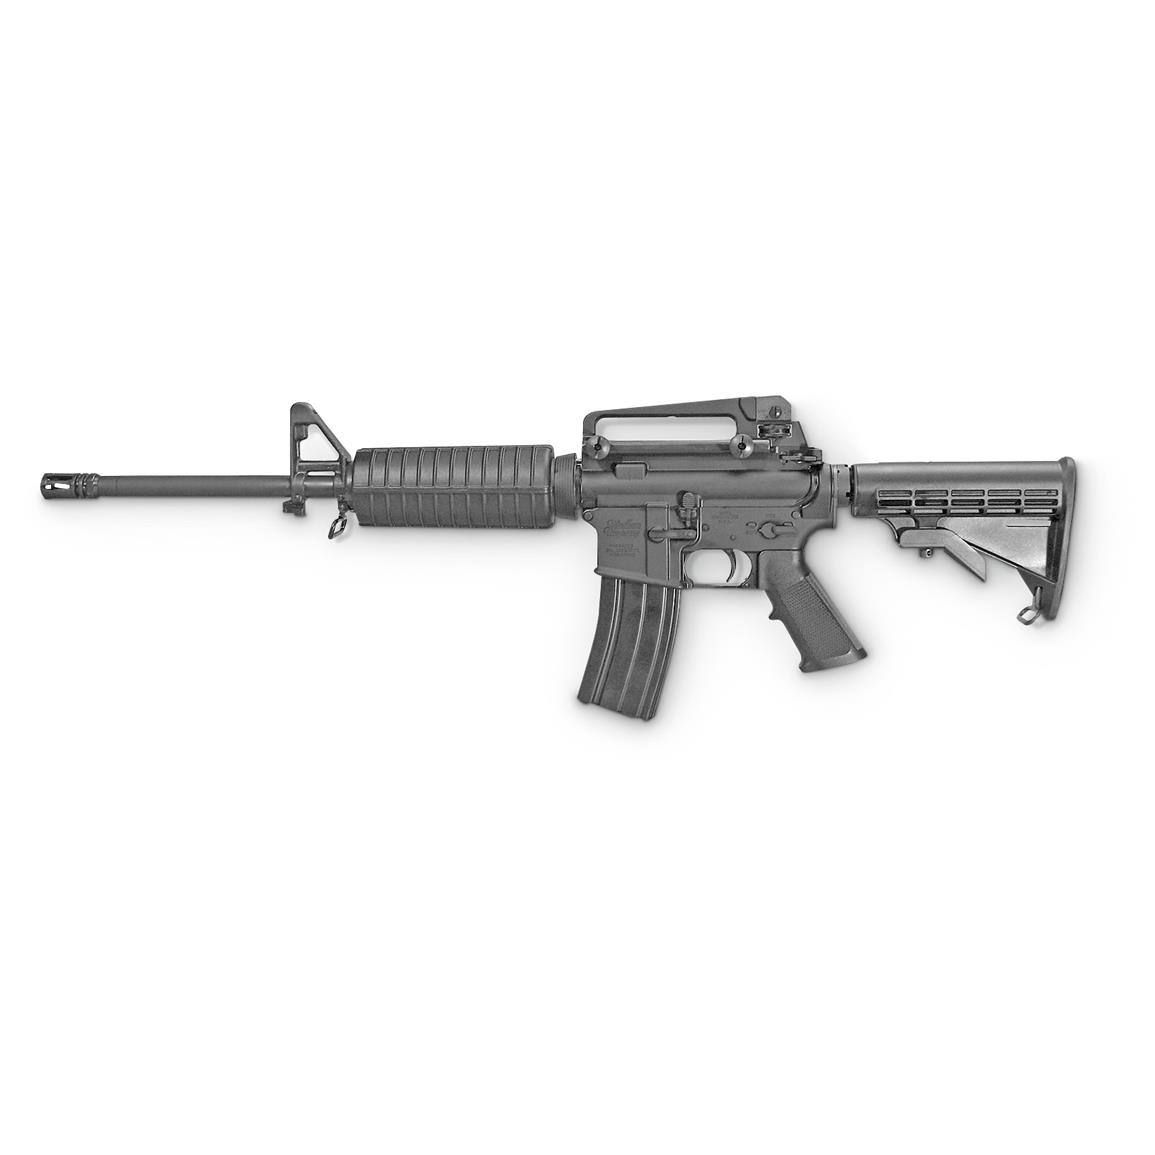 "Windham Weaponry HBC AR-15, Semi-Automatic, 5.56x45mm/.223 Remington, 16"" Barrel, 30+1 Rounds"